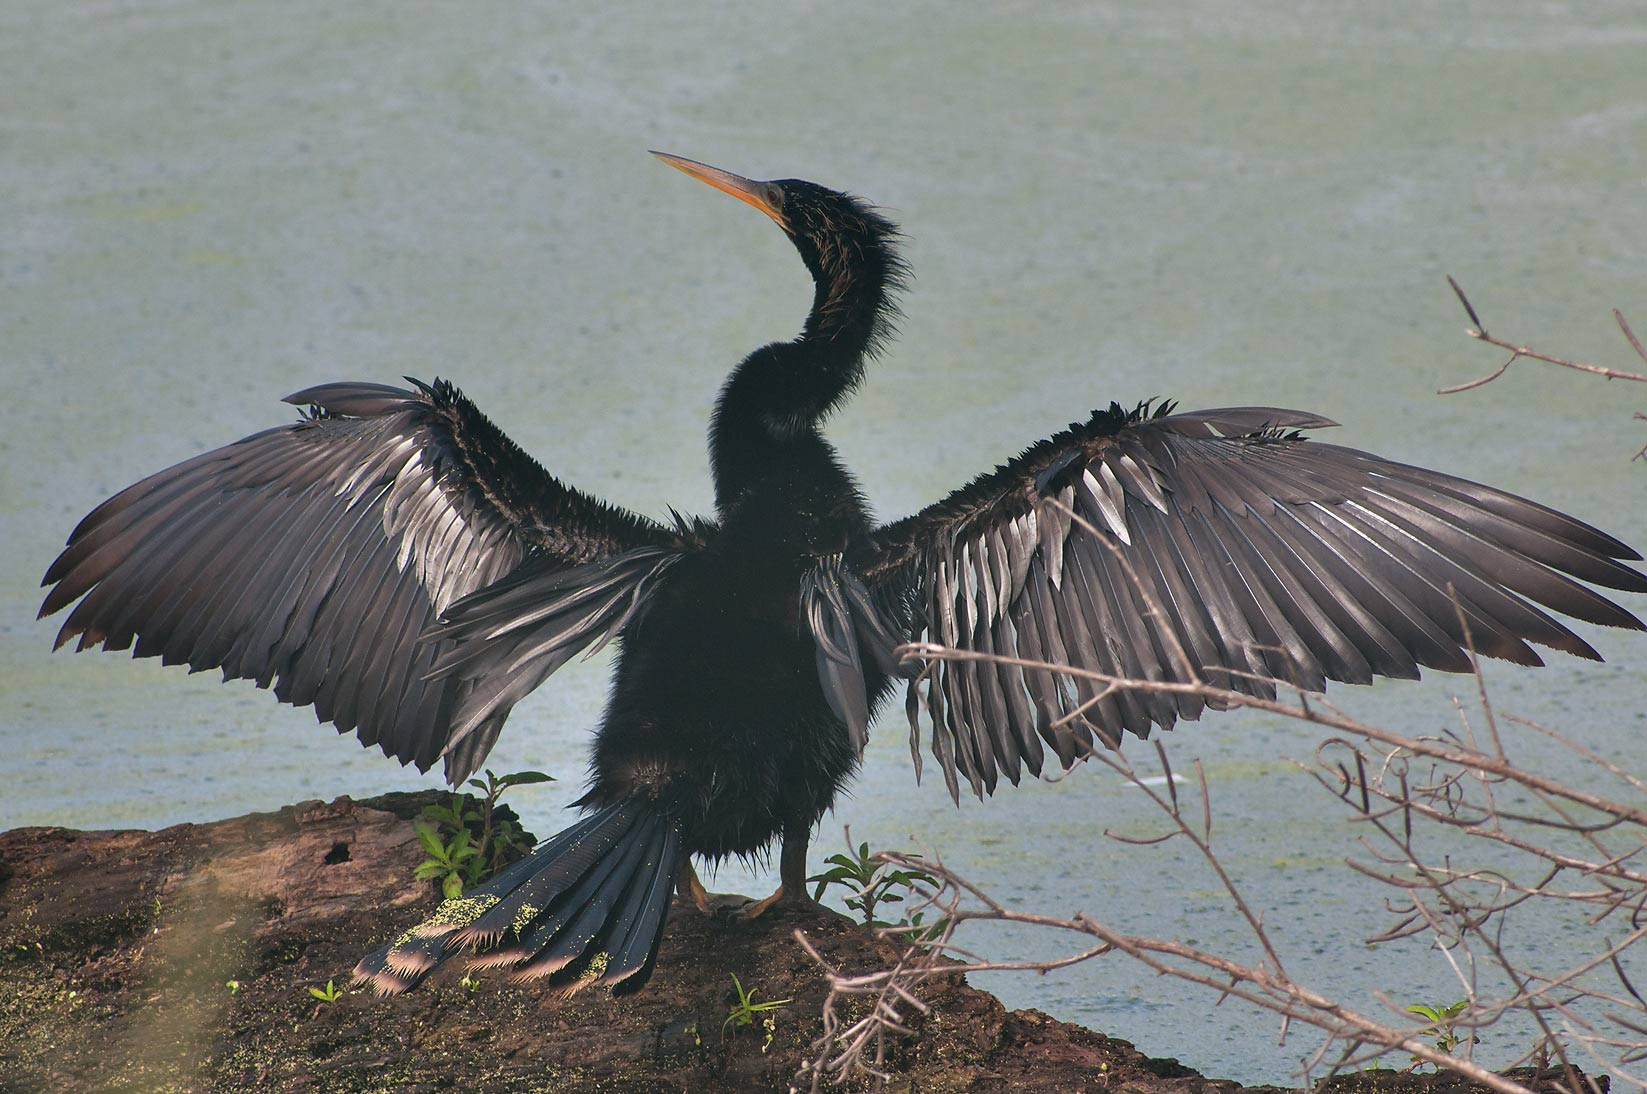 Cormorant drying its wings in Brazos Bend State Park. Needville, Texas